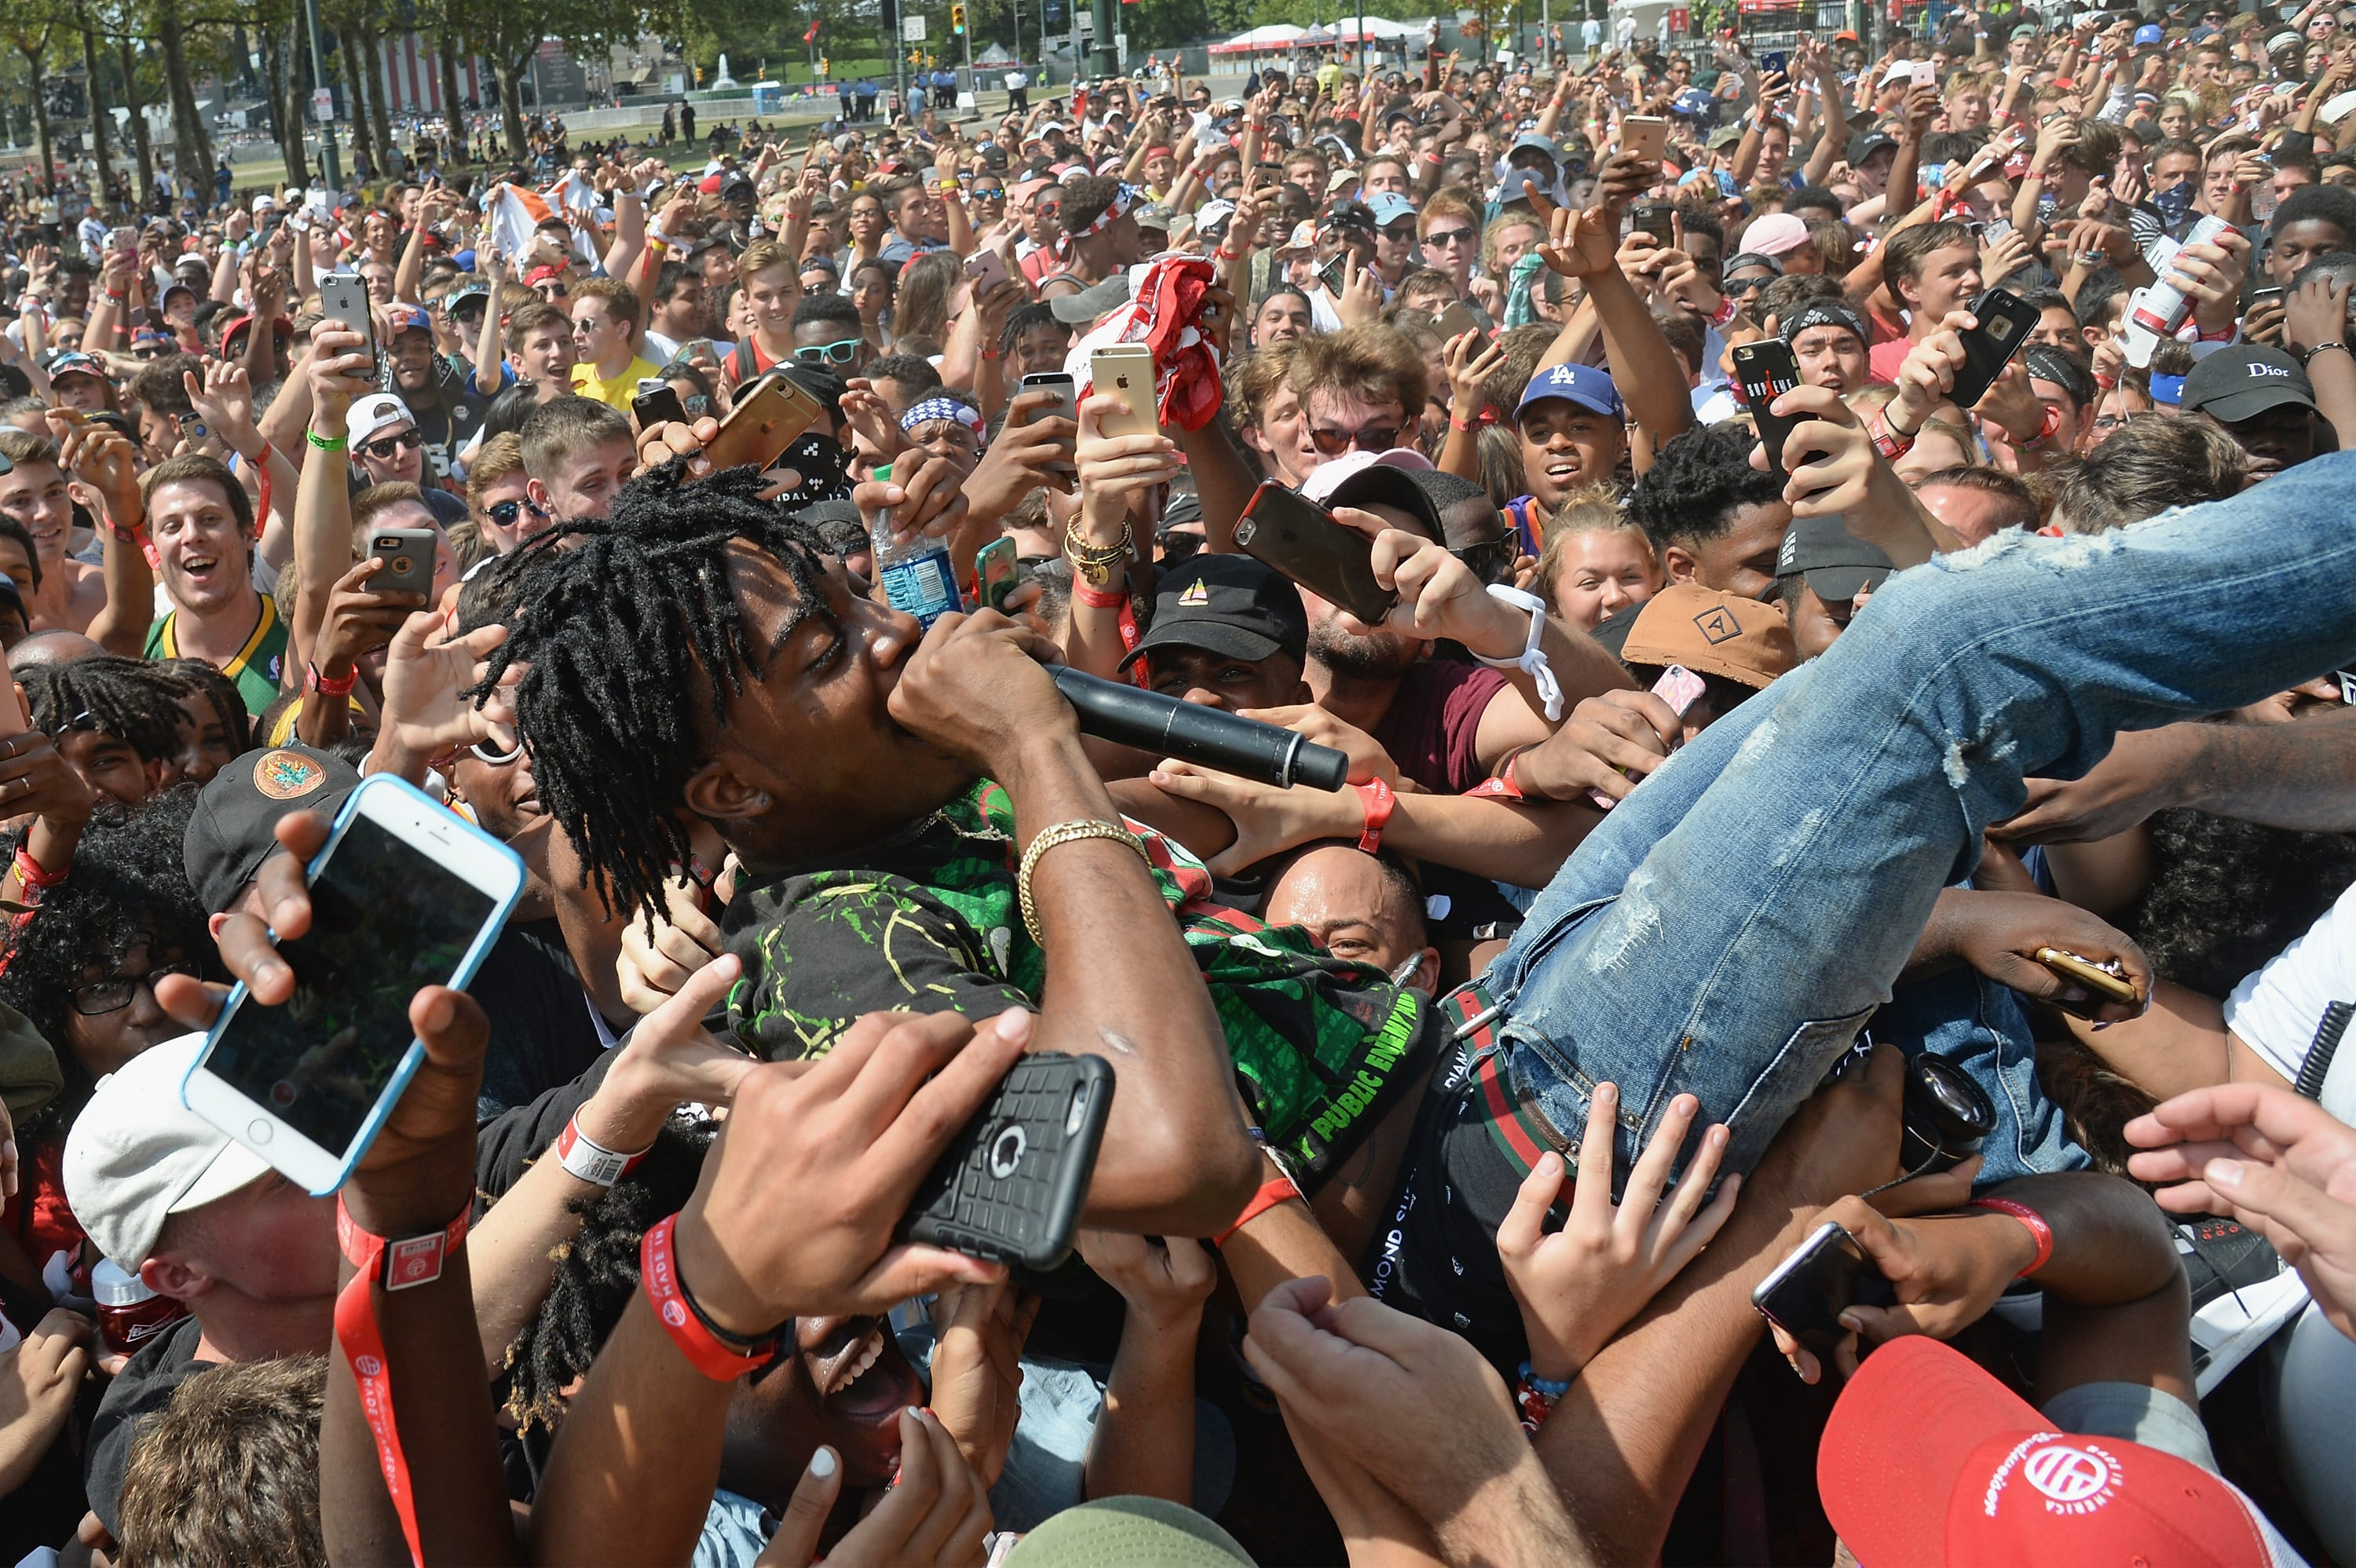 Playboi Carti Crowdsurfing at Made In America Festival